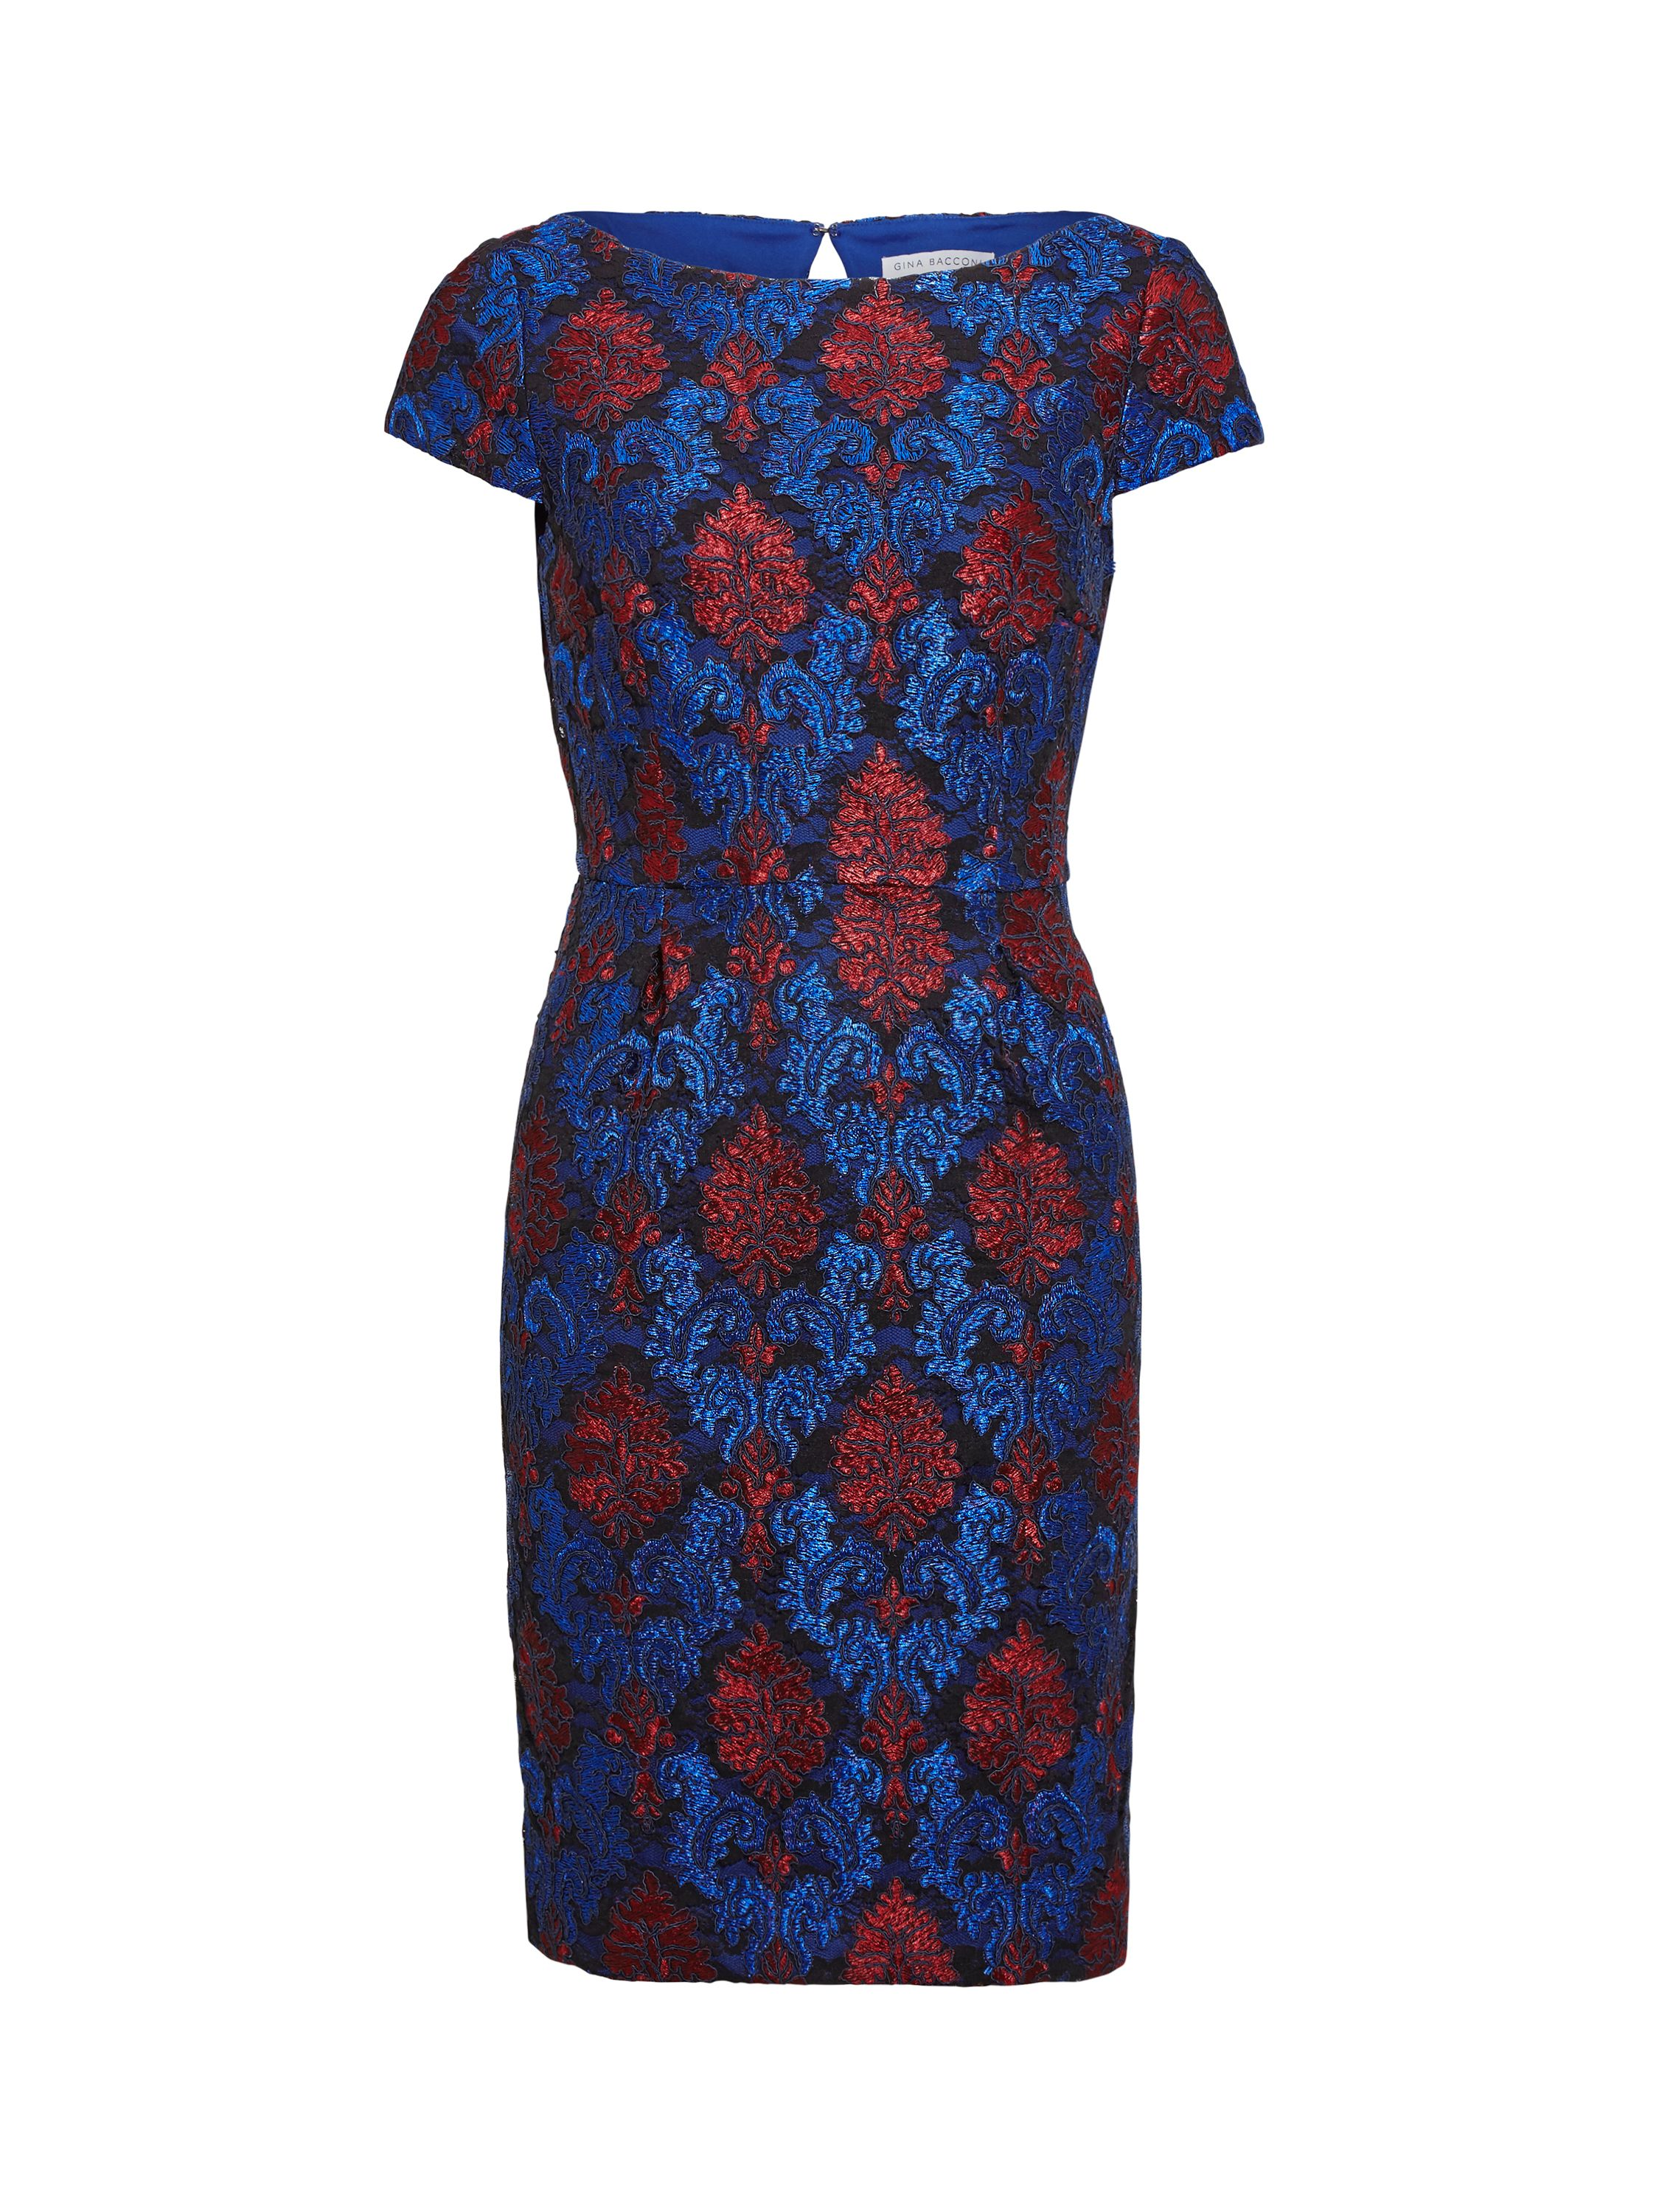 Gina Bacconi Corded Embroidery Lace Shift Dress, Blue